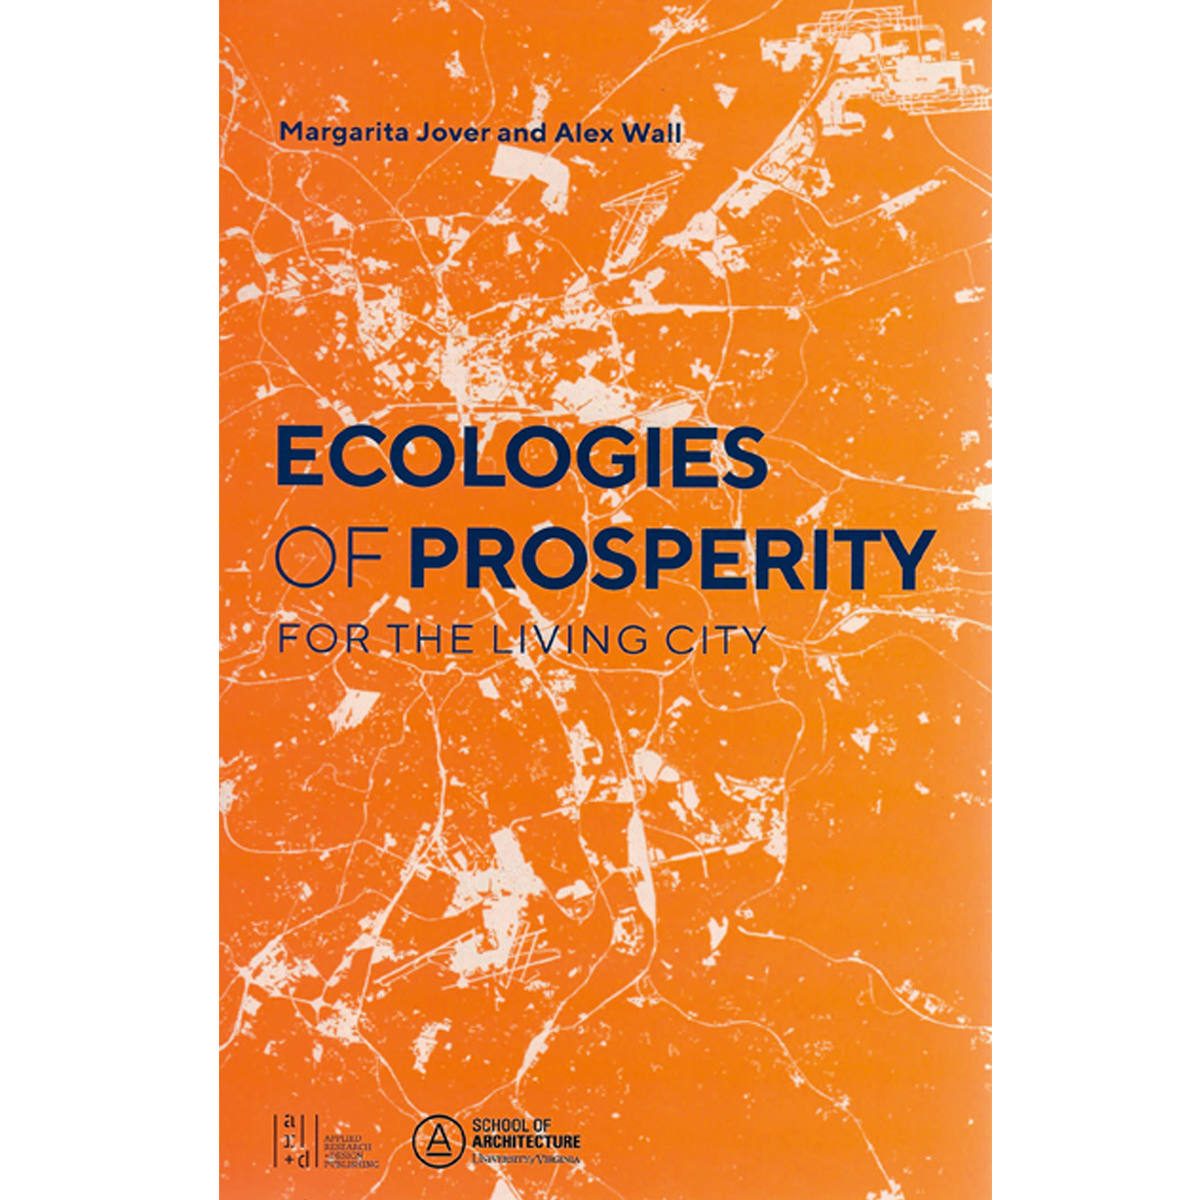 Ecologies of Prosperity for the Living City